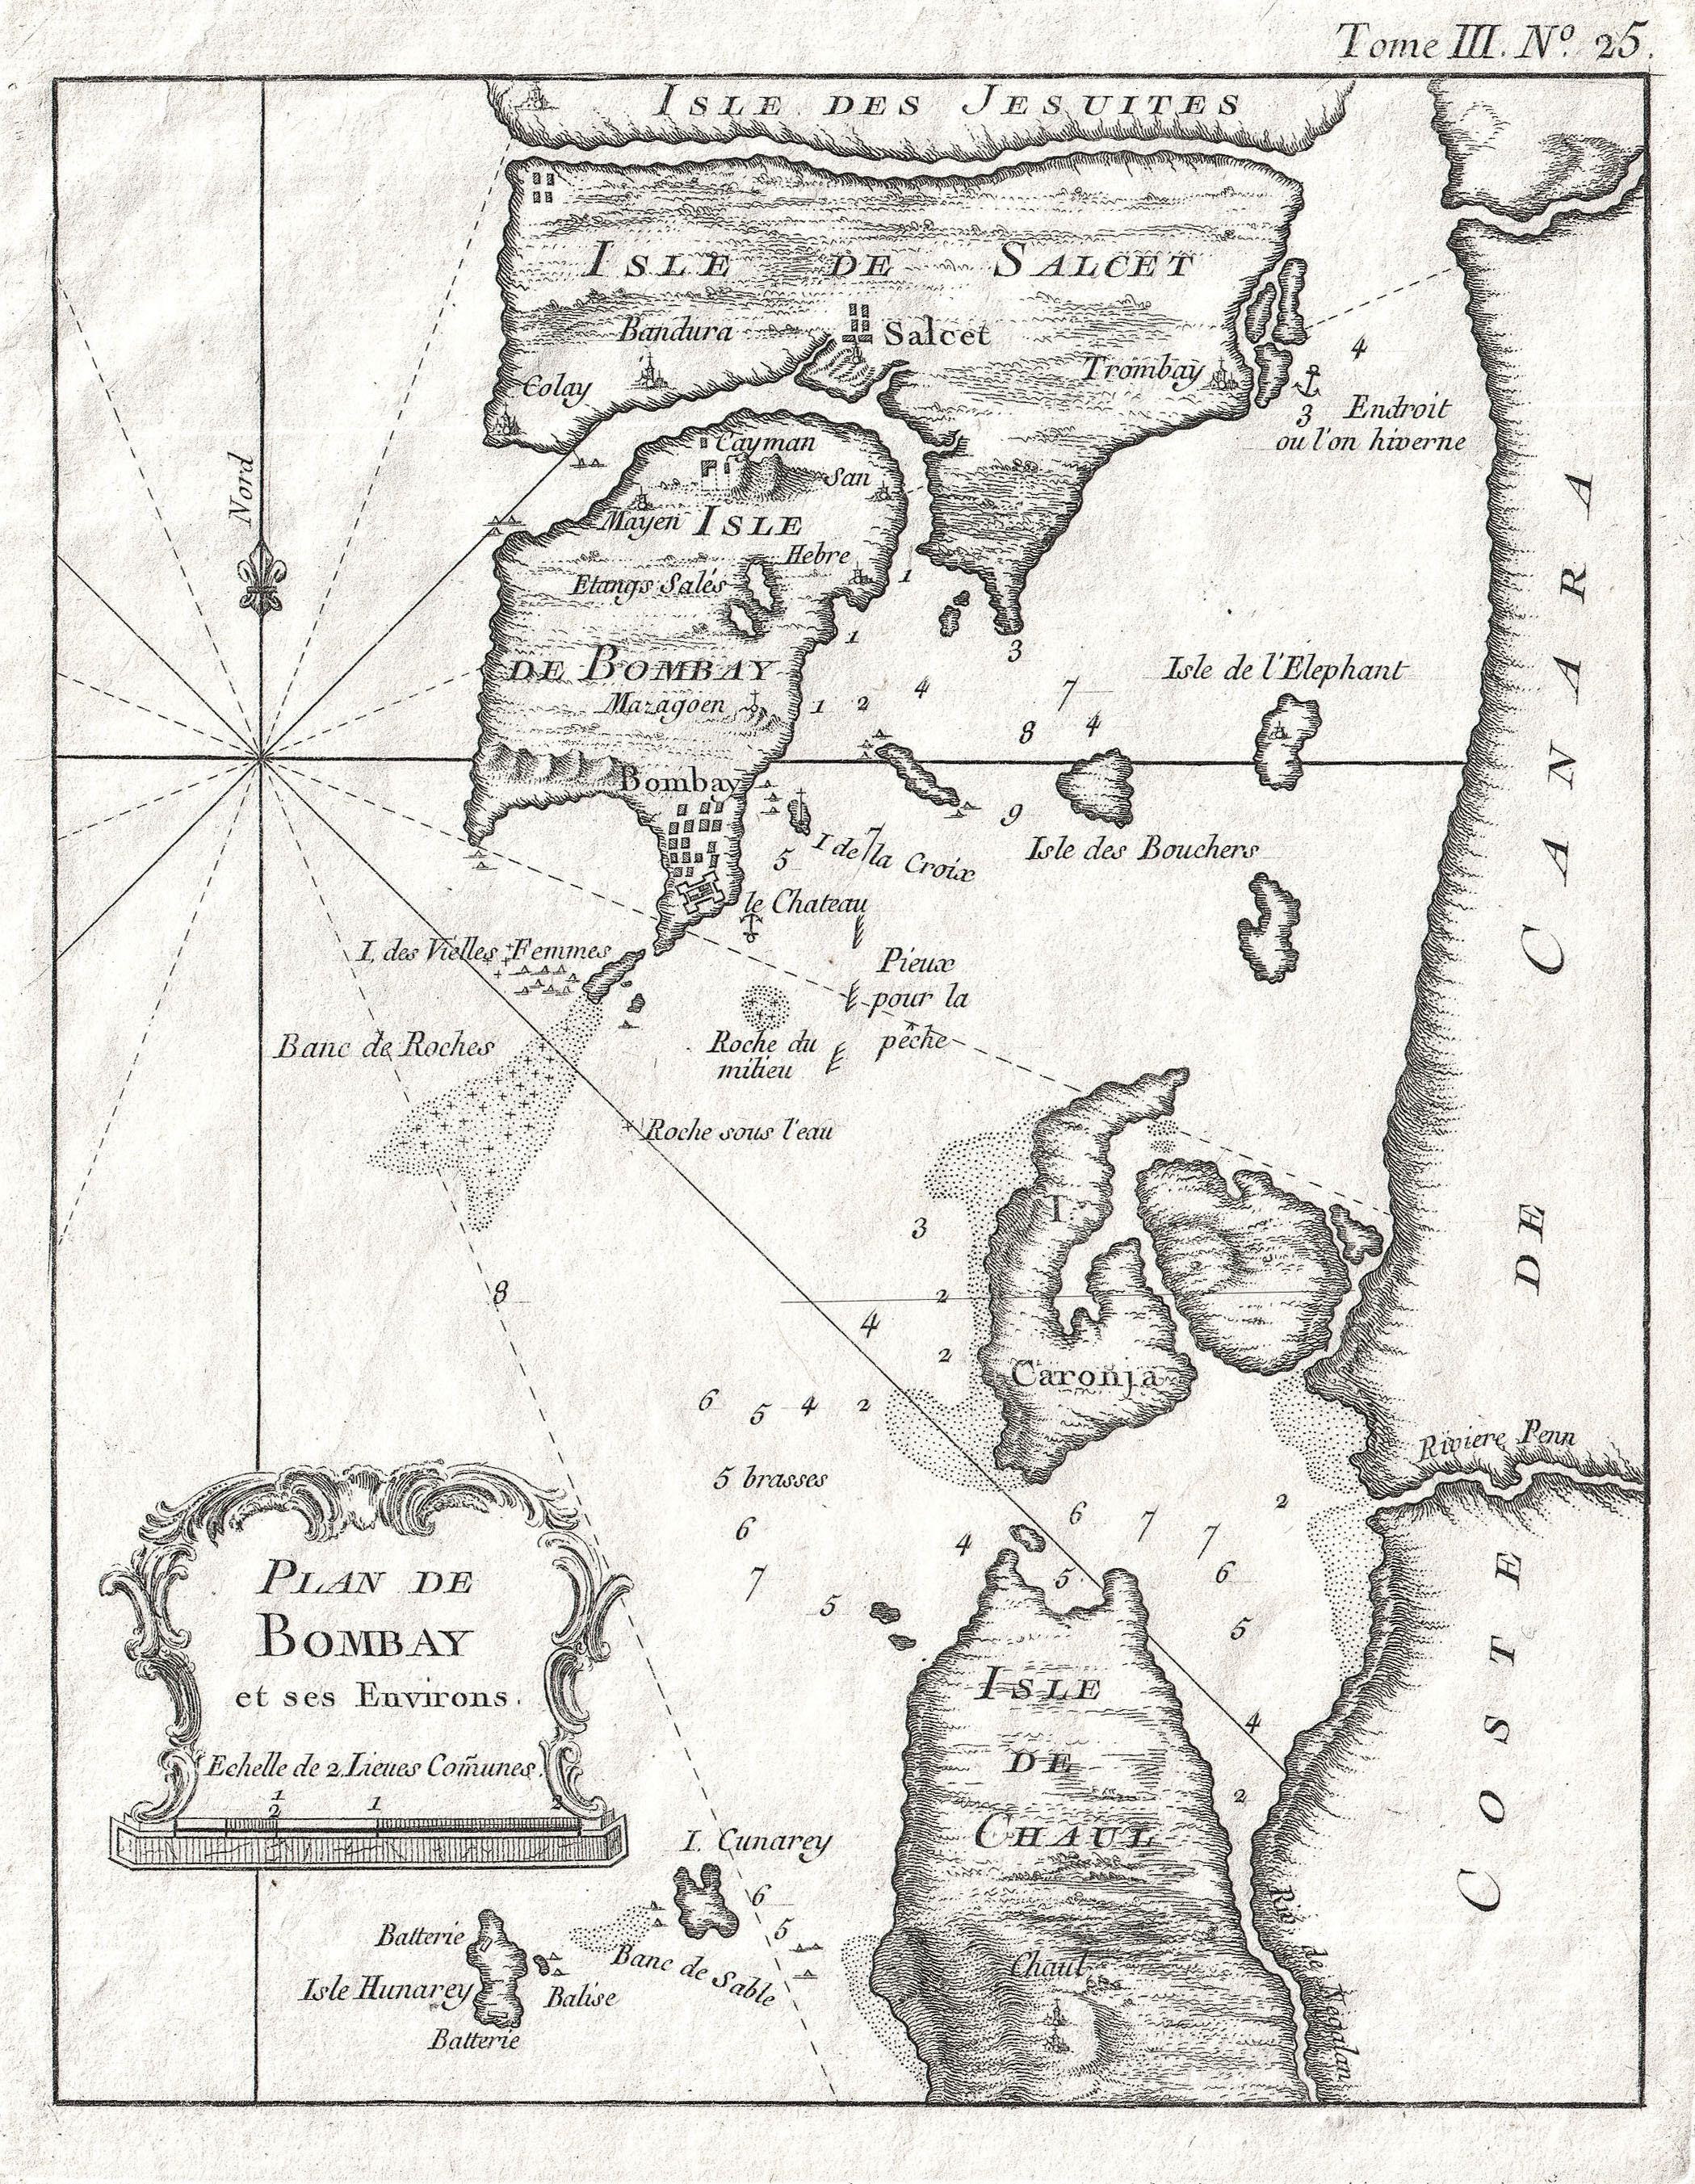 http://upload.wikimedia.org/wikipedia/commons/d/d7/1764_Bellin_Map_of_Bombay_%28Mumbai%29_India_-_Geographicus_-_Bombay-bellin-1750.jpg